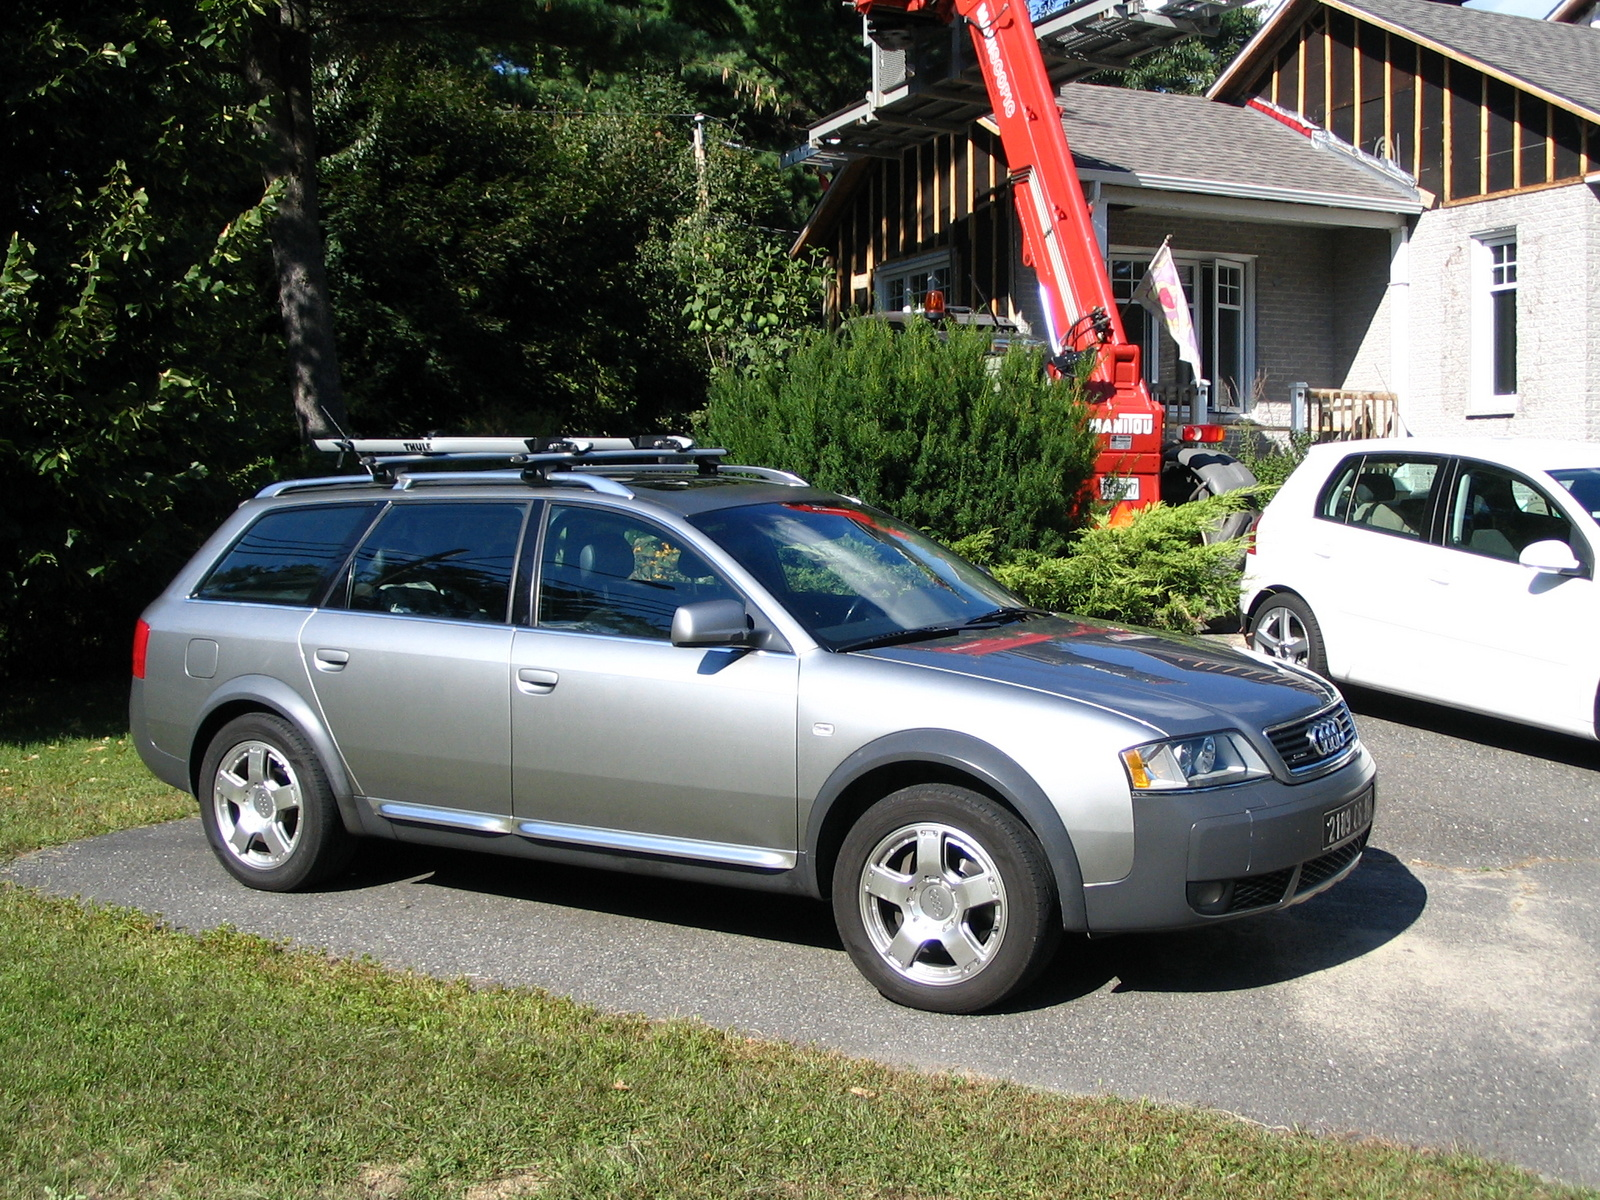 2001 Audi Allroad Quattro Photos Informations Articles All Road Engine Diagram 2